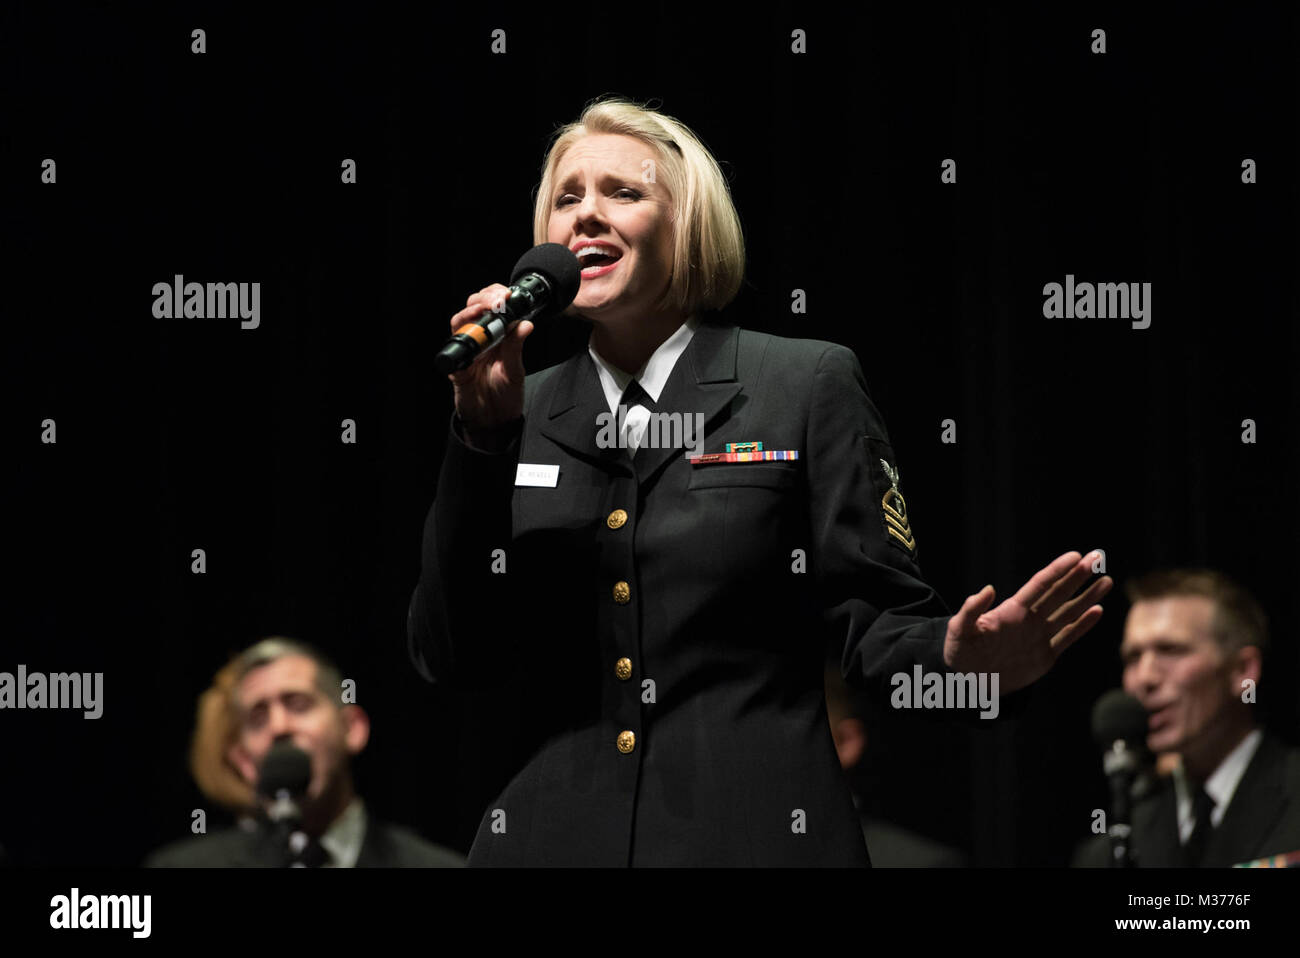 AKRON, Ohio (April 19 2017) Chief Musician Beth Revell sings a solo during a performance at the University of Akron. - Stock Image